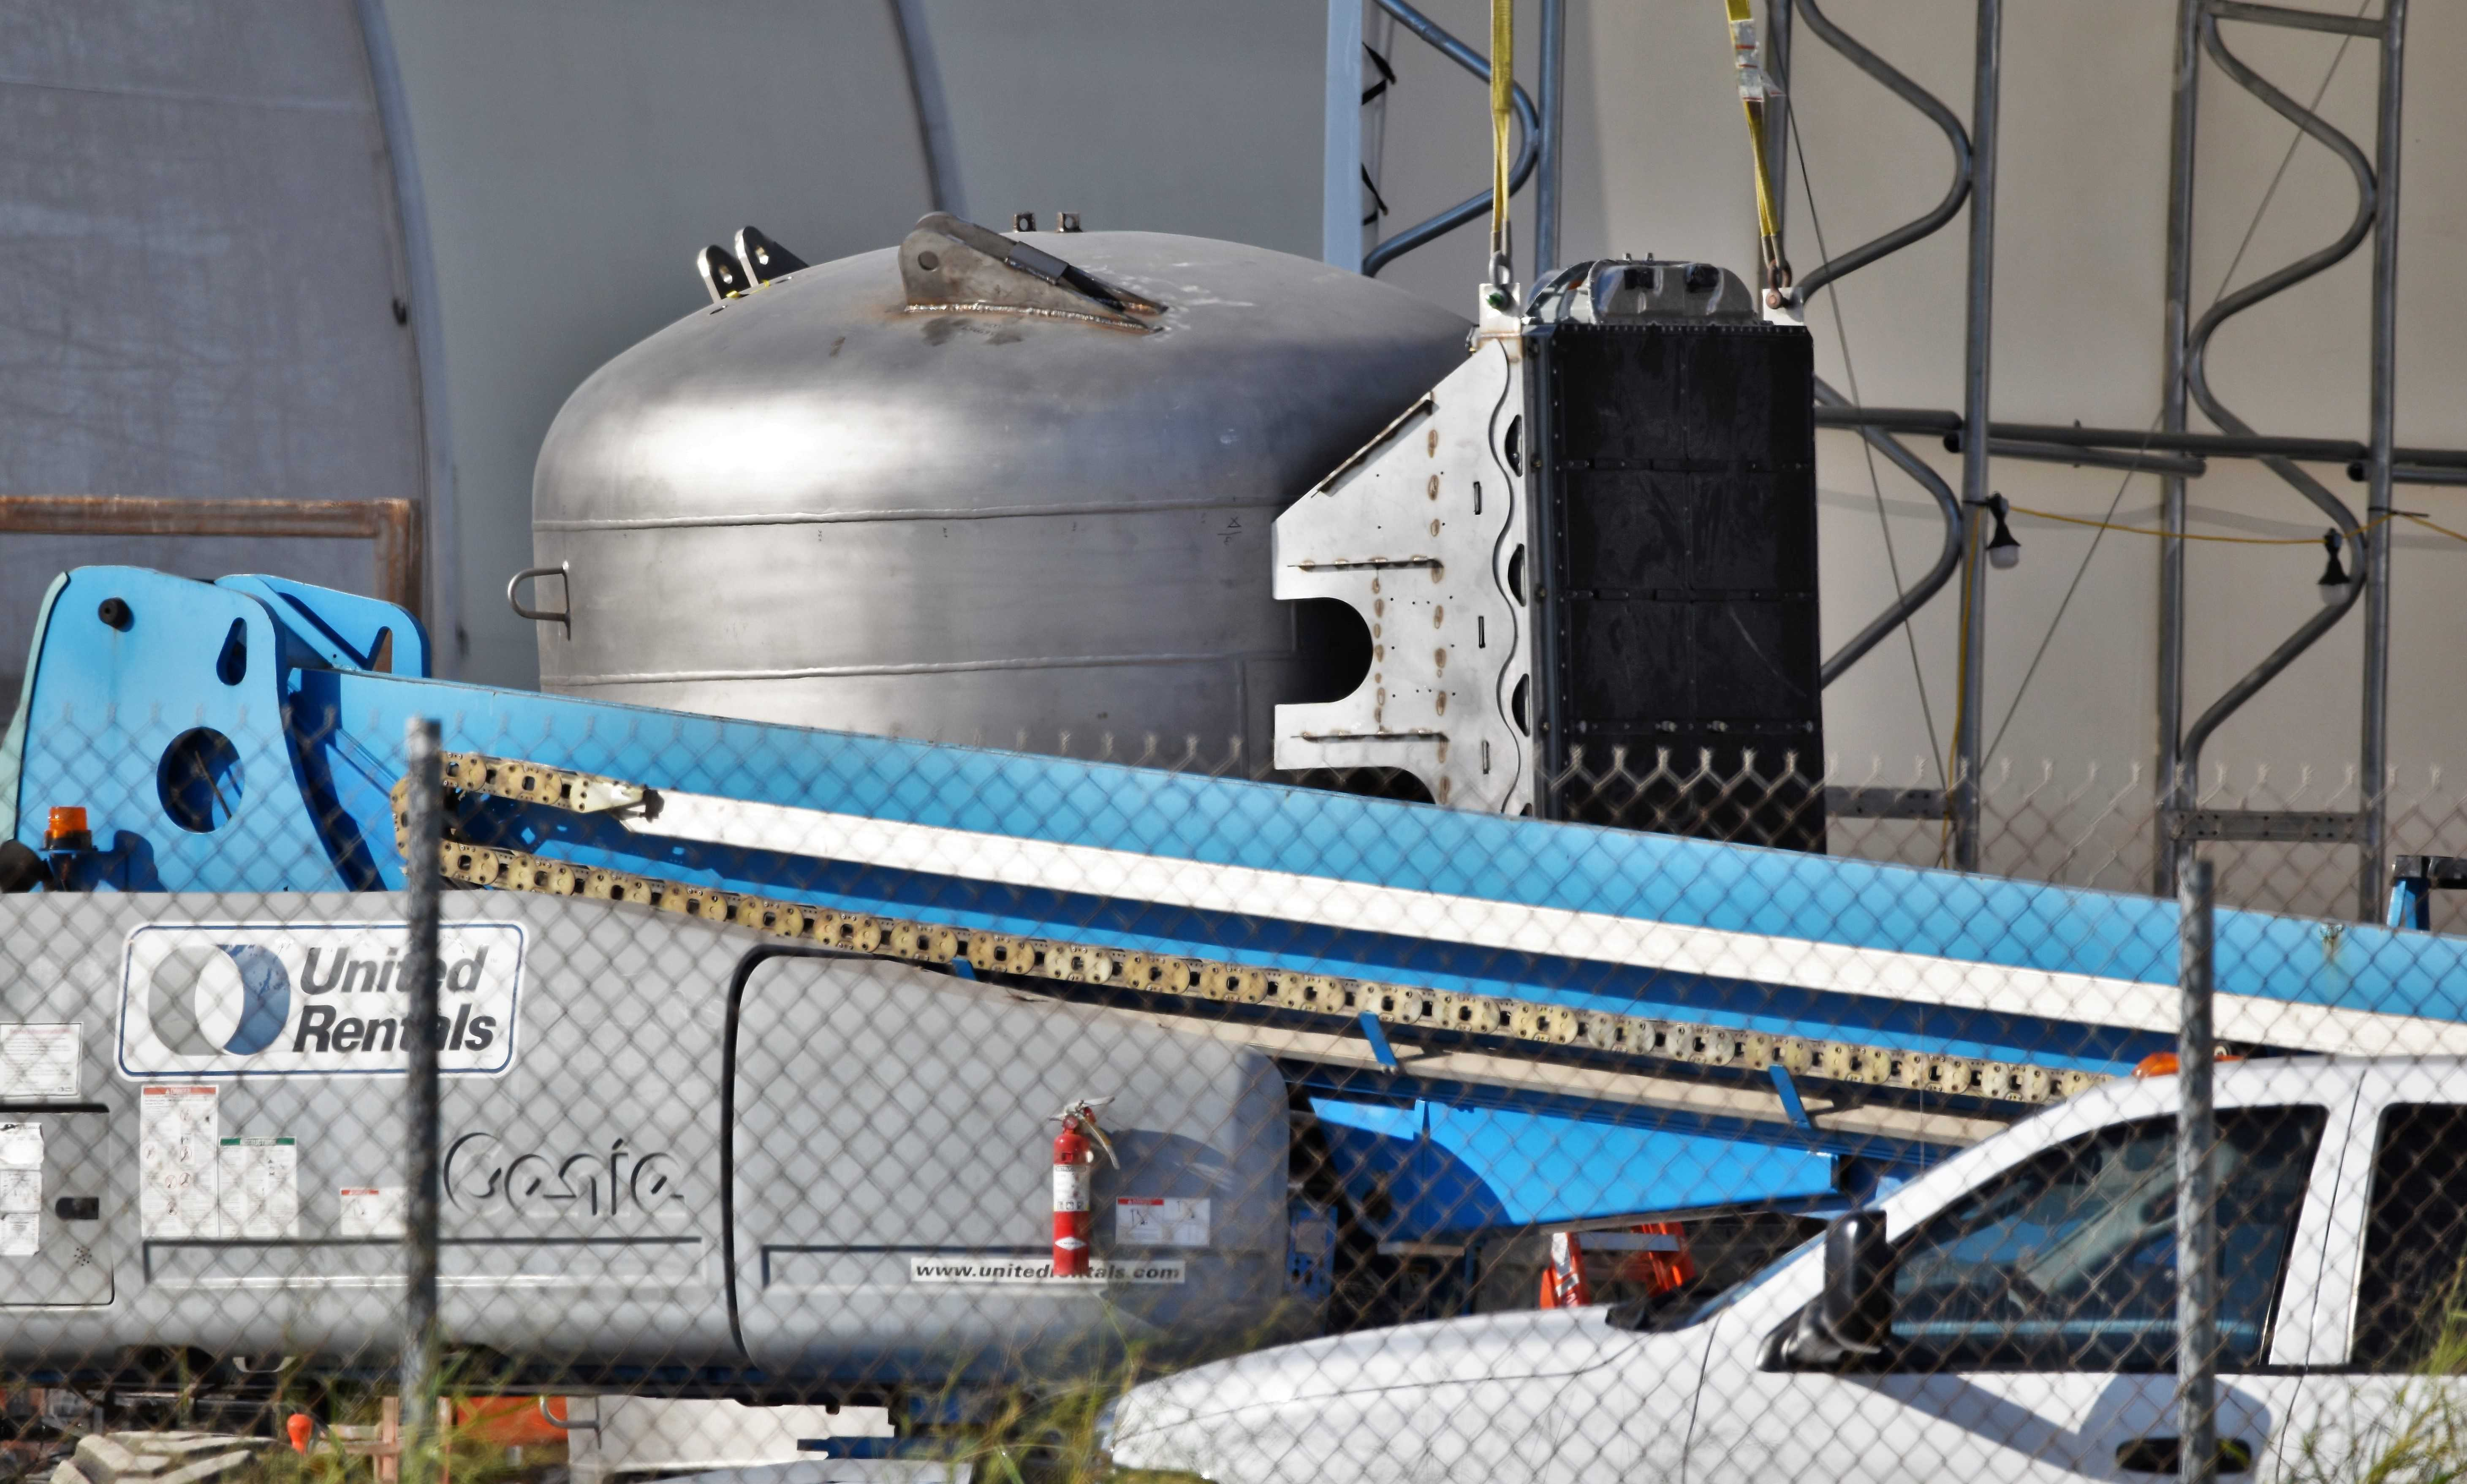 Boca Chica Starship Mk1 092319 (NASASpaceflight – bocachicagal) header 1 crop (c)